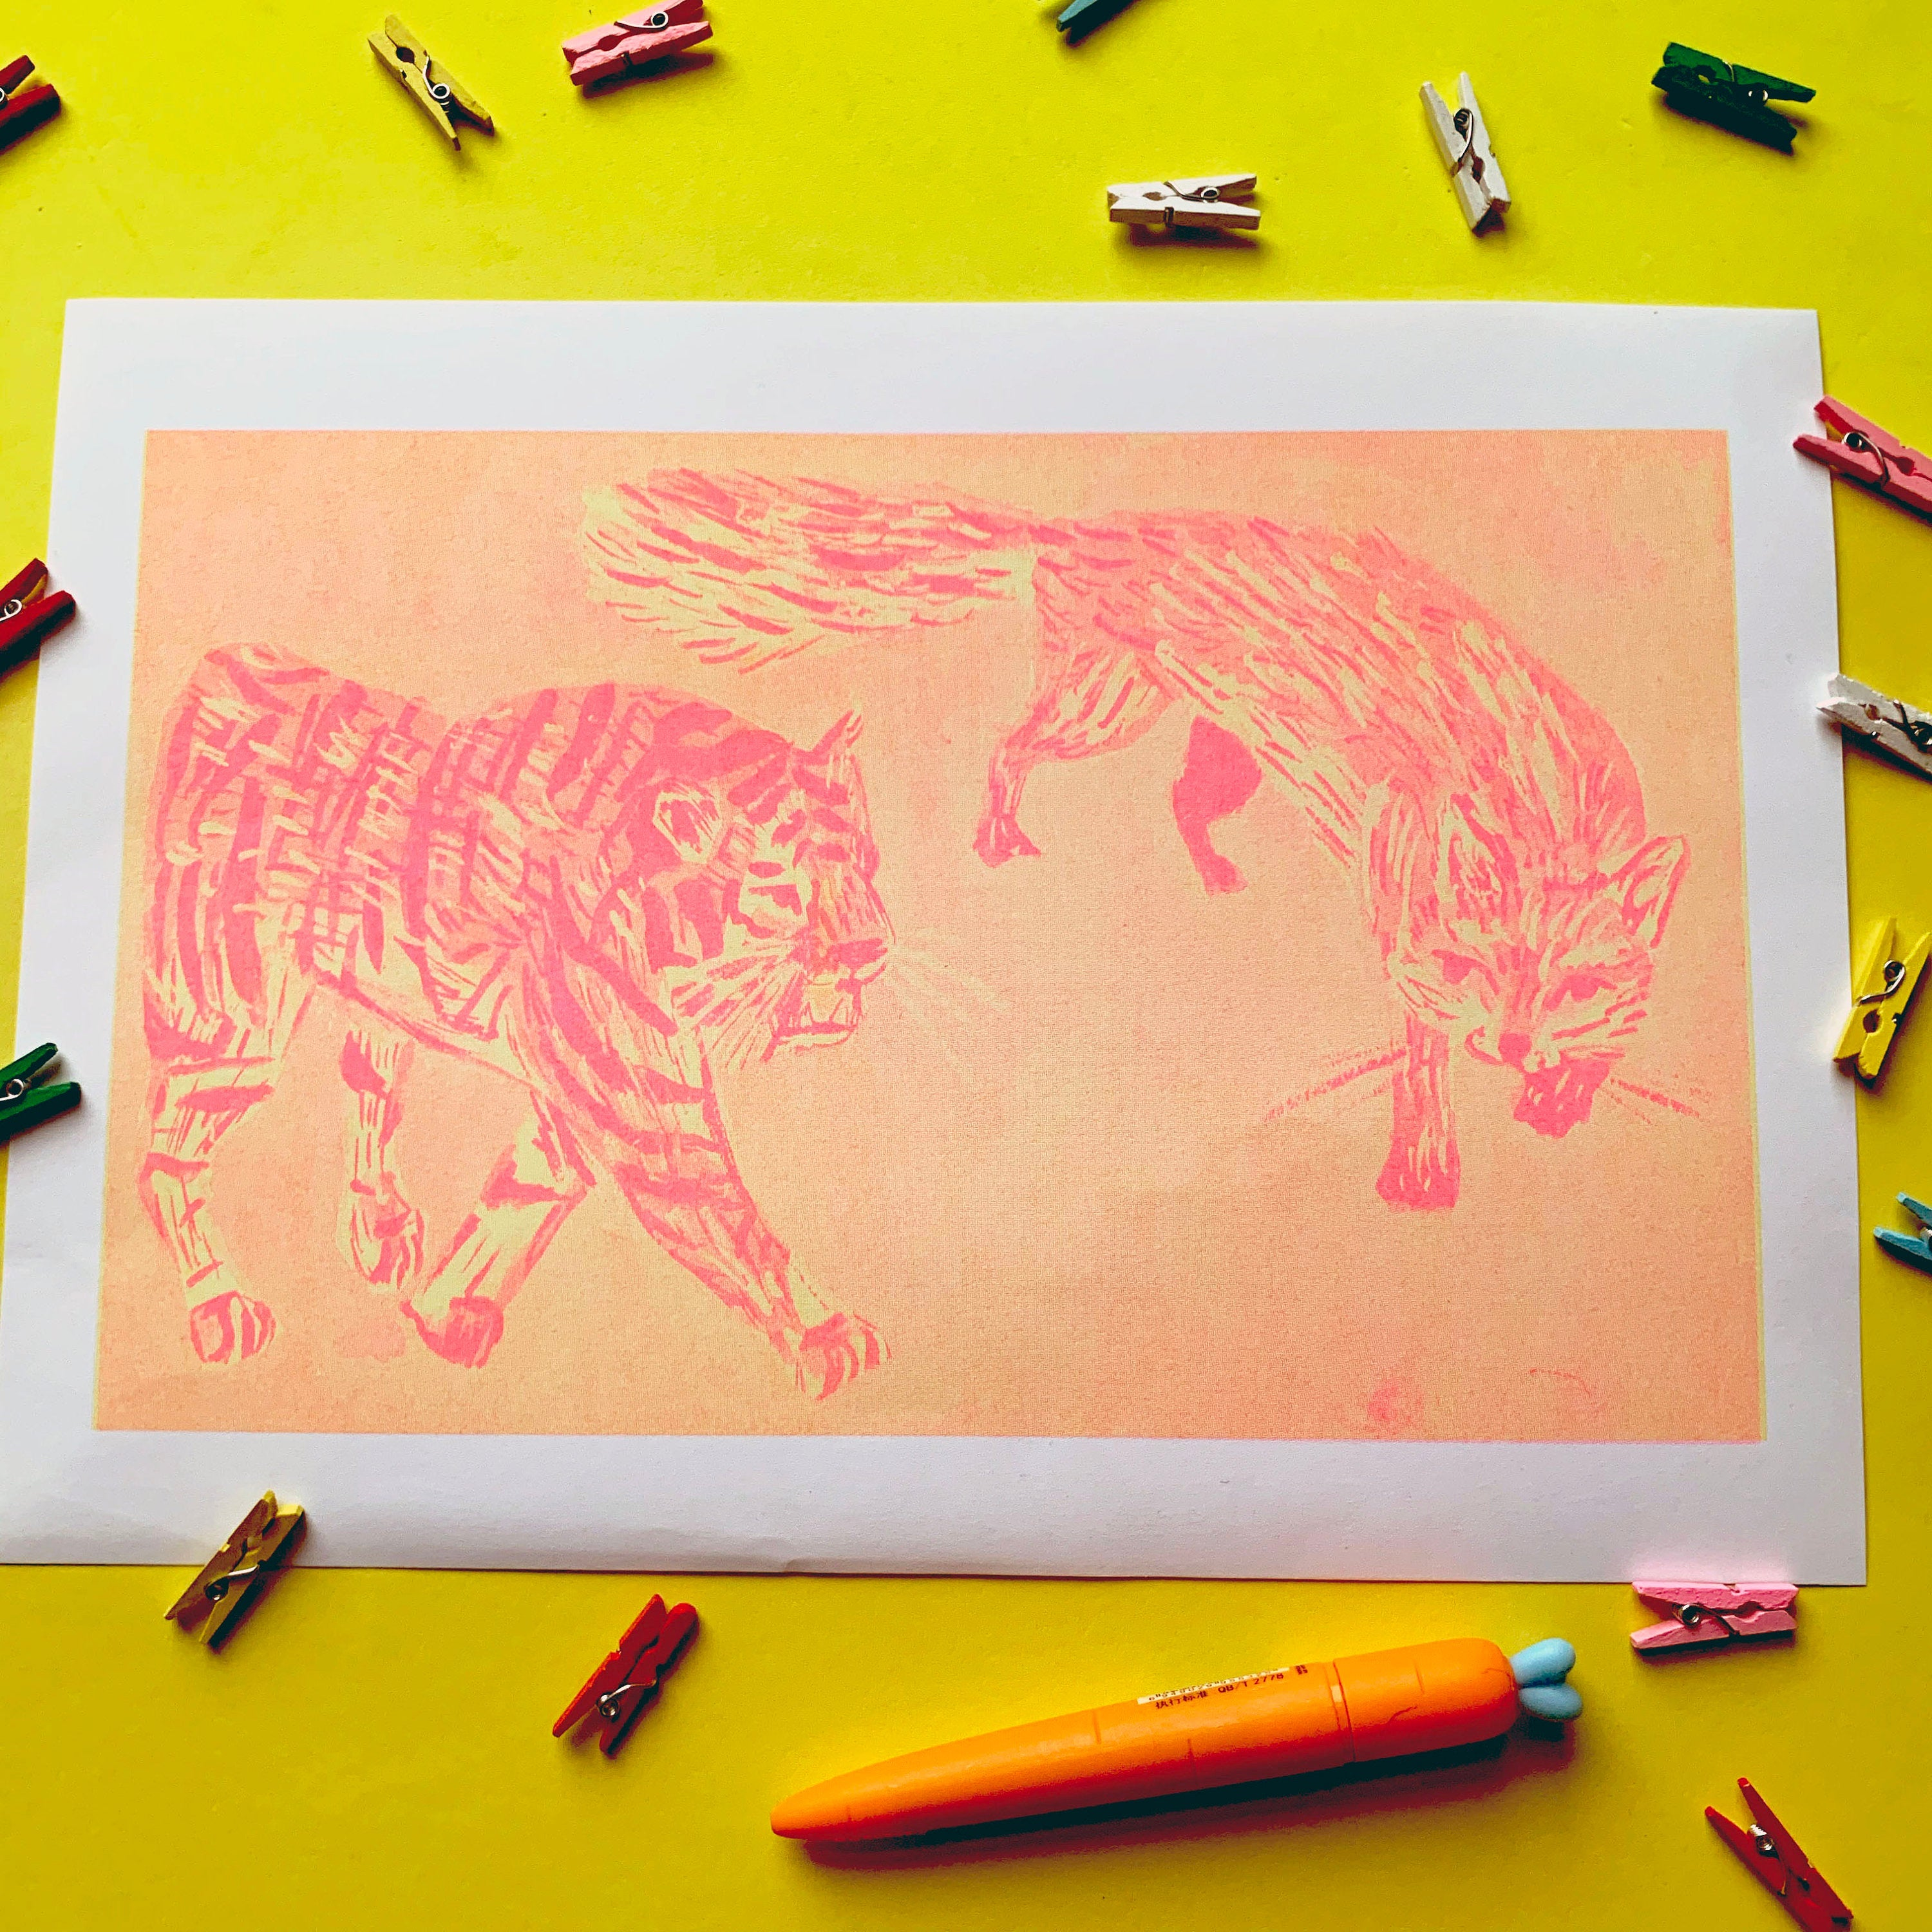 Image of an A4 risograph print. It depicts an illustration of a tiger and a fox. They were originally illustrated with gouache paint and then have been printed with a mixture of yellow and pink riso ink onto white recycled paper.